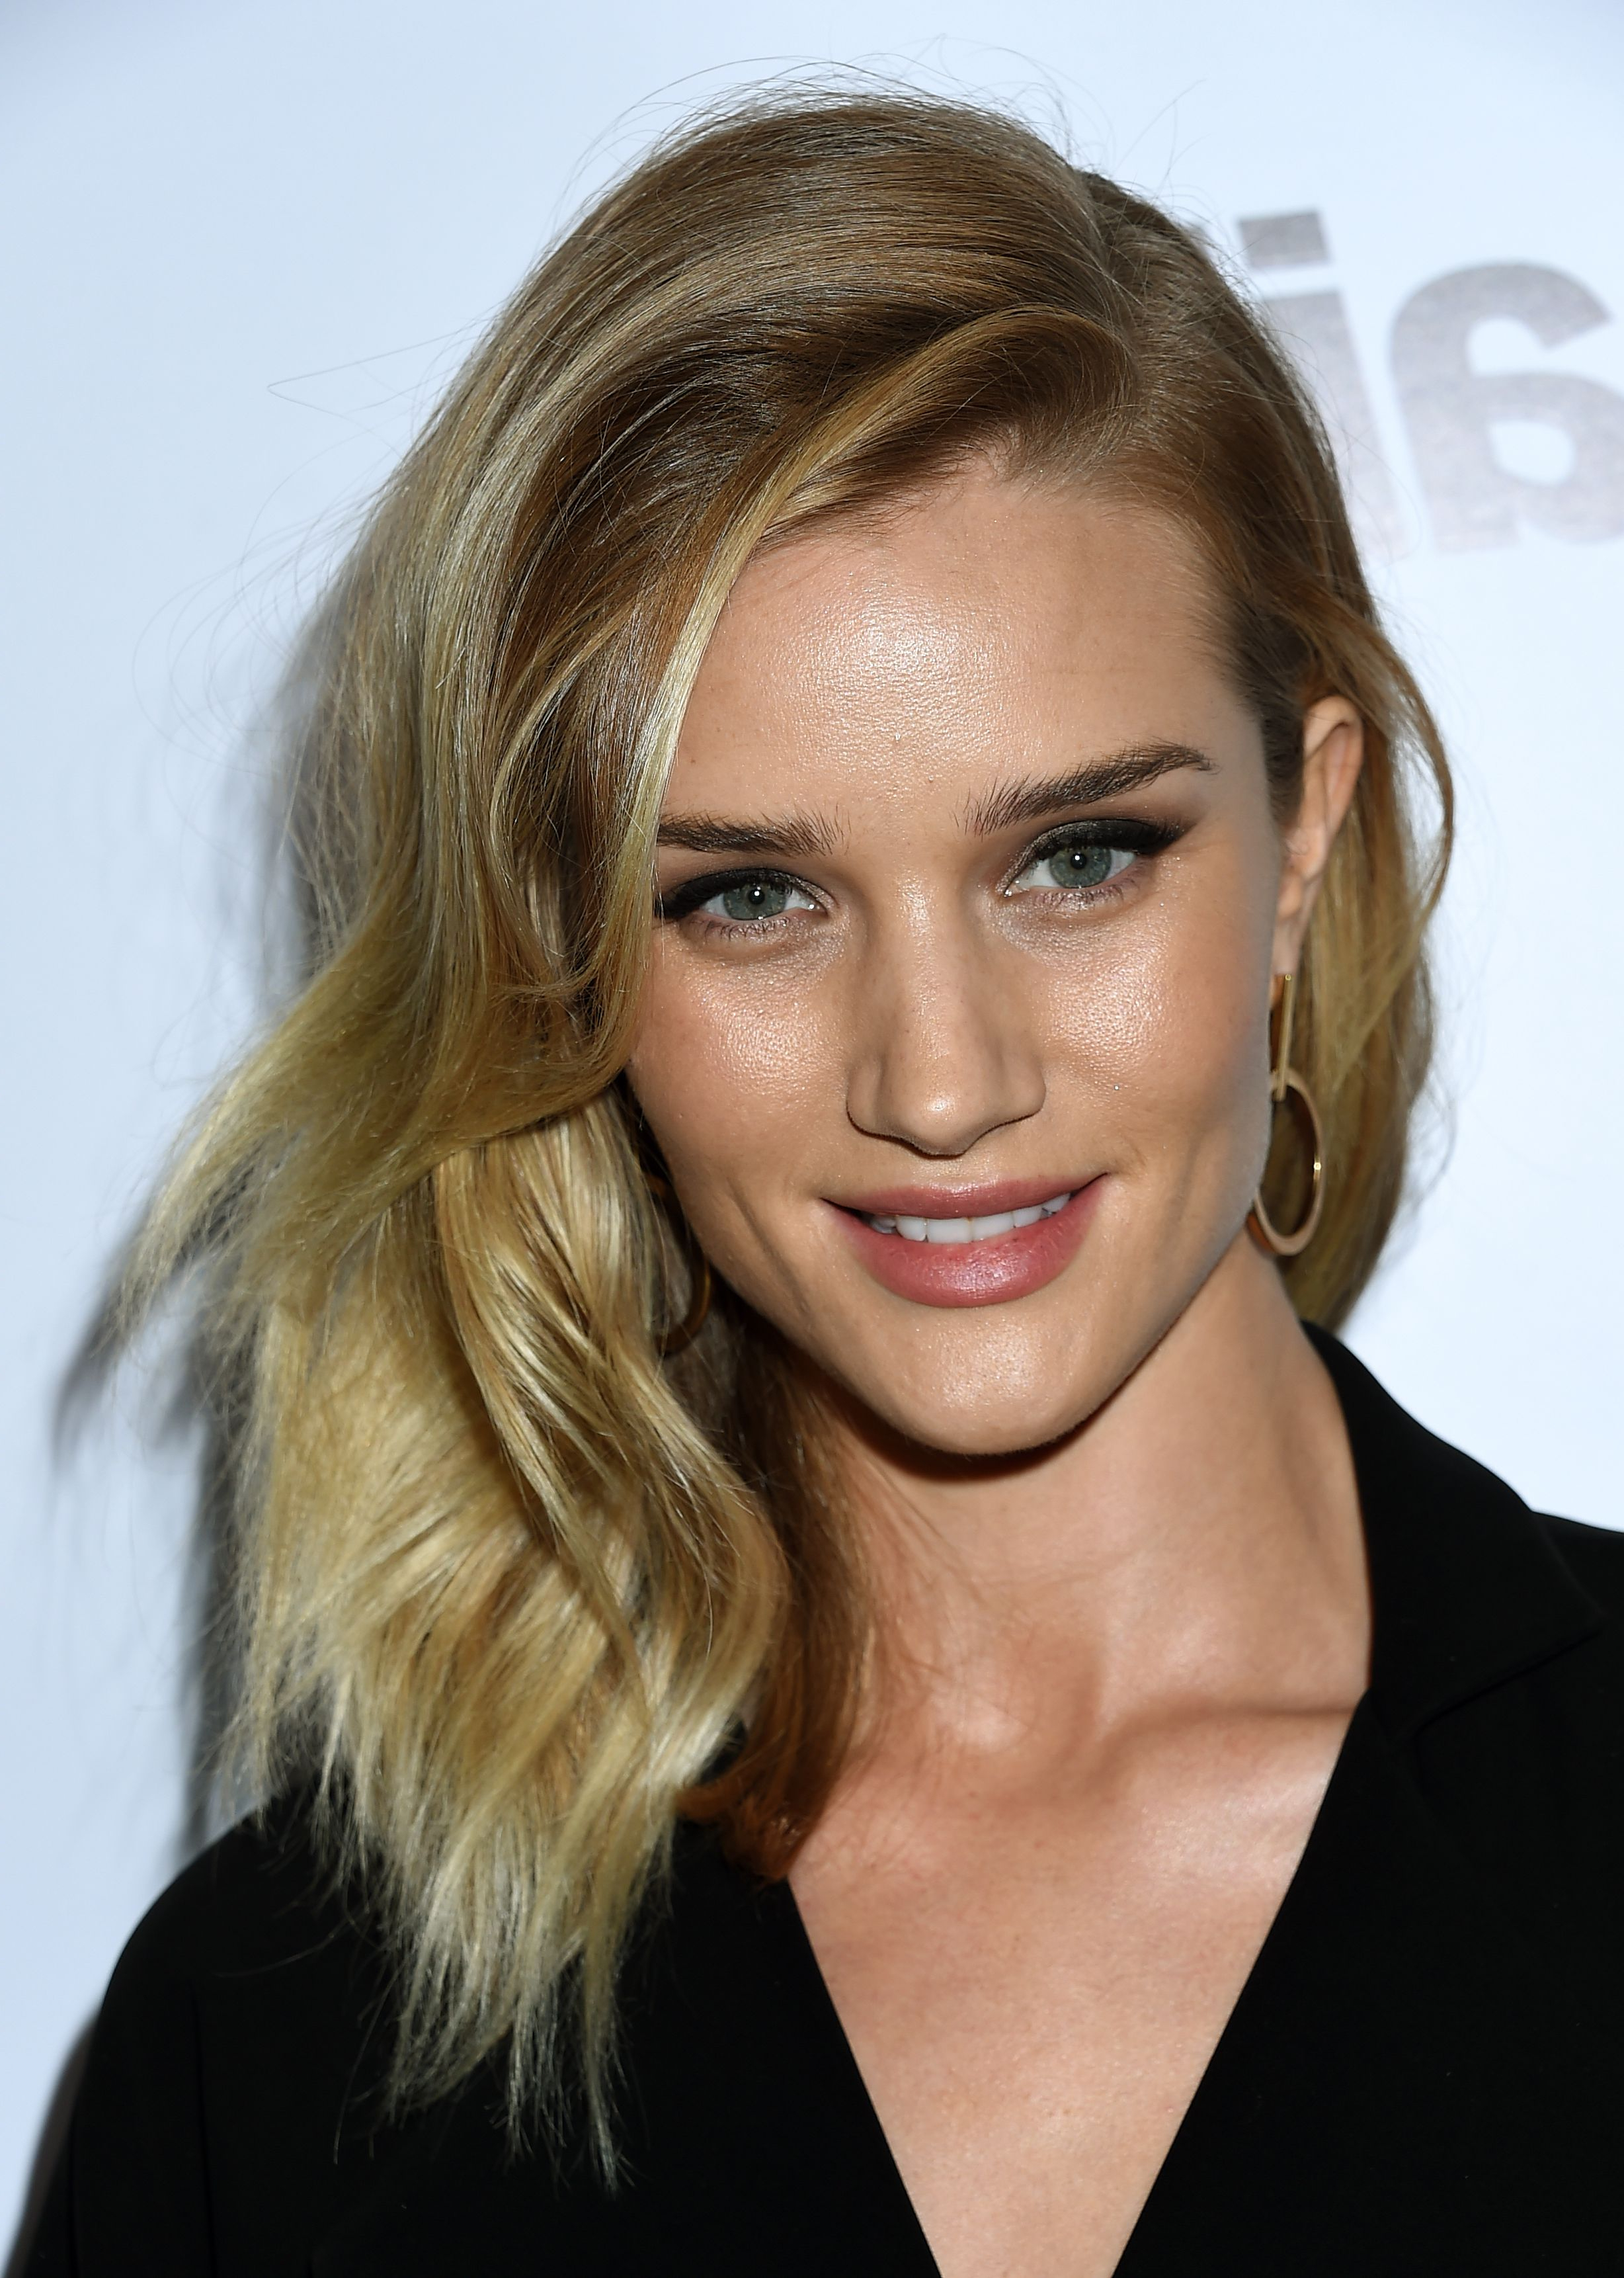 The 13 Best Hairstyles For Square Faces In Short Hairstyles For High Foreheads (View 24 of 25)